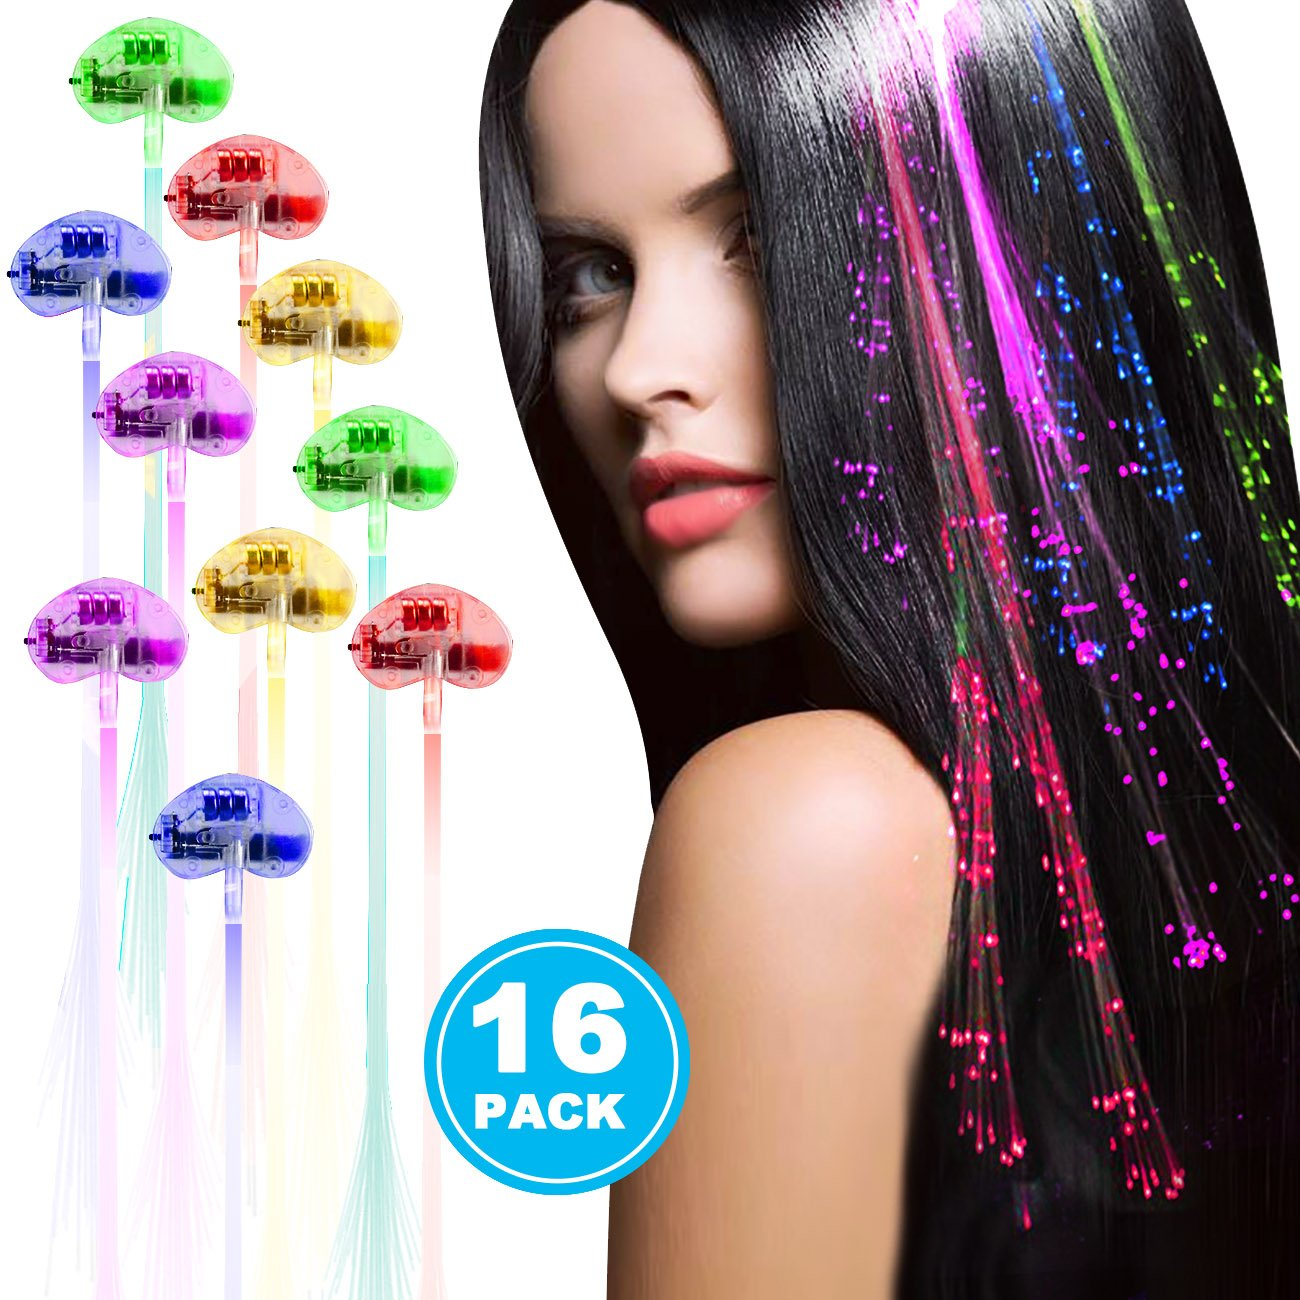 Acooe 16 Pack LED Lights Hair, Light-Up Fiber Optic LED Hair Barrettes Party Favors Party, Bar Dancing Hairpin, Hair Clip, Multicolor Flash Barrettes Clip Braid (16 pcs) X-Chiji